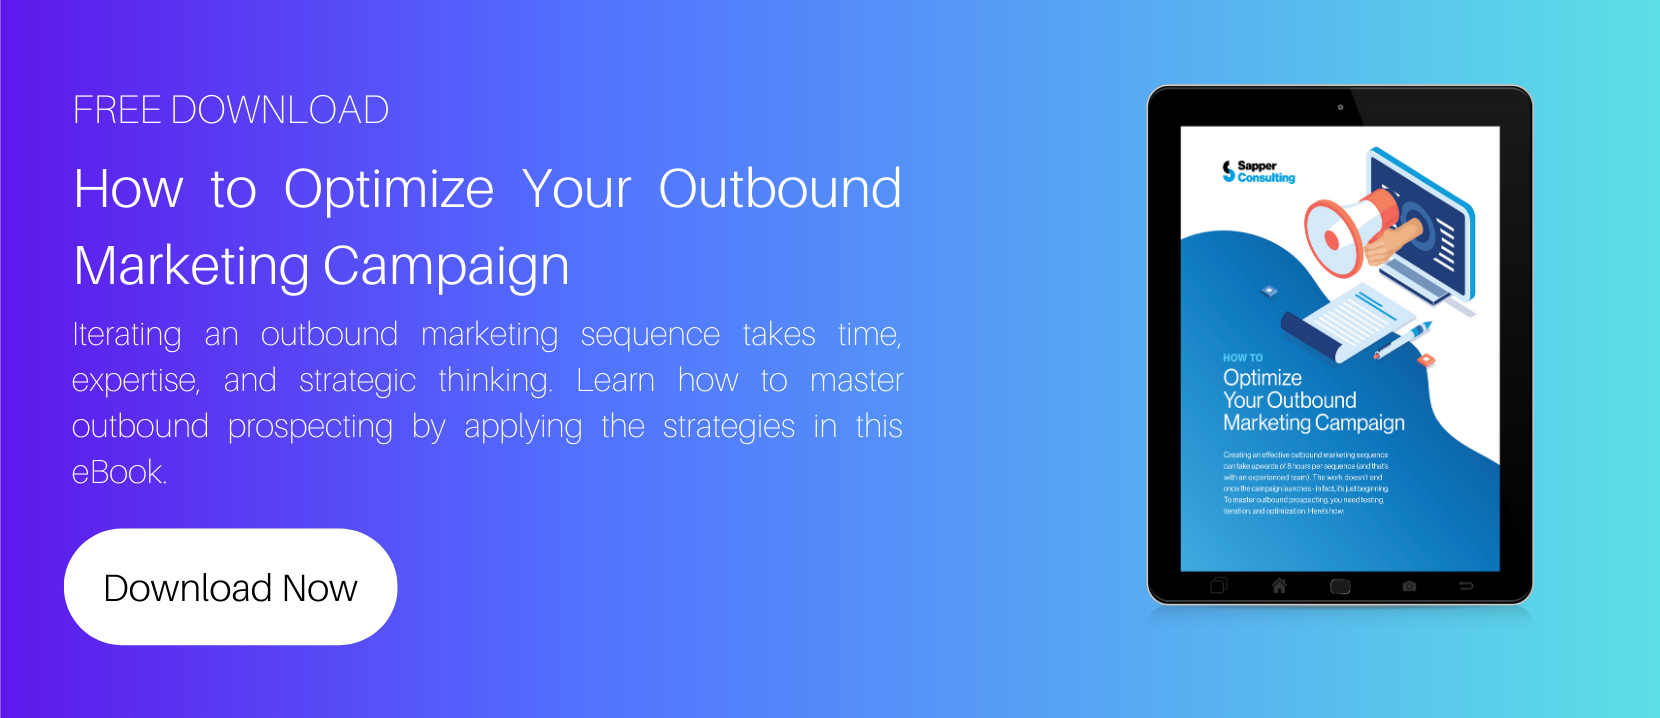 How to Optimize Your Outbound Marketing Campaign